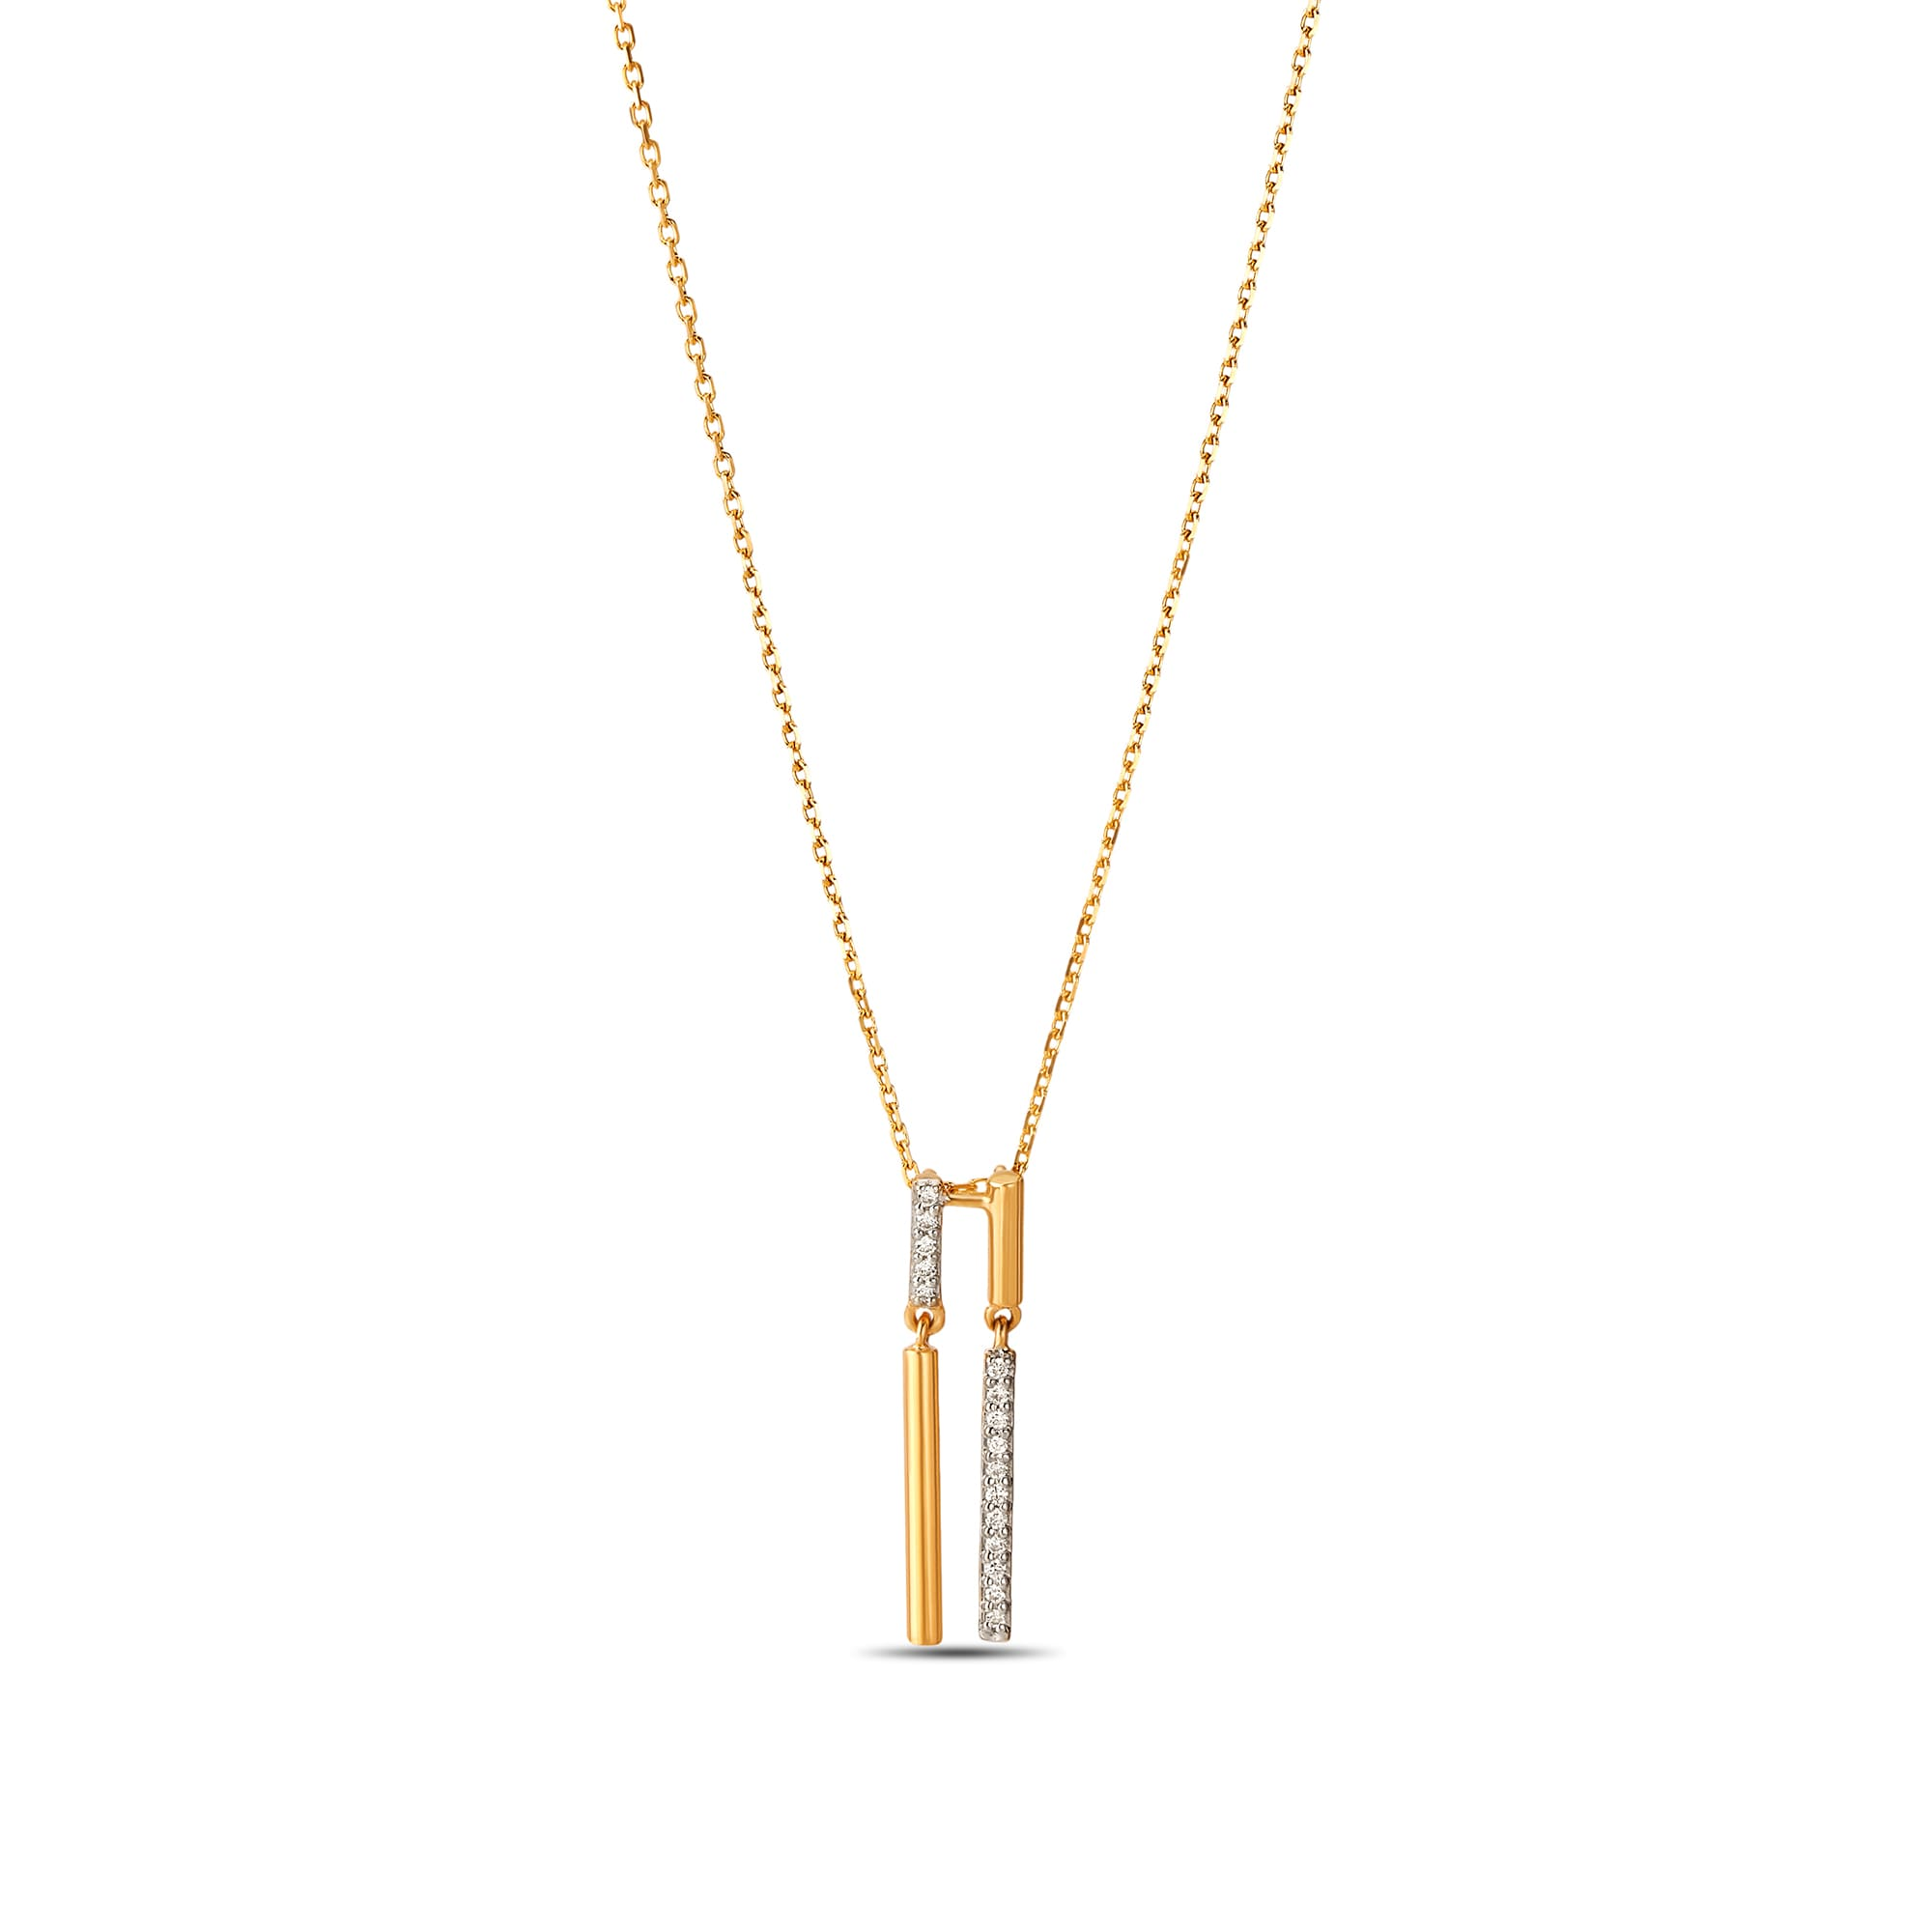 Mia Pendant Gold Chain Buy Mia By Tanishq Pedant Set Online,Designer Tile And Stone